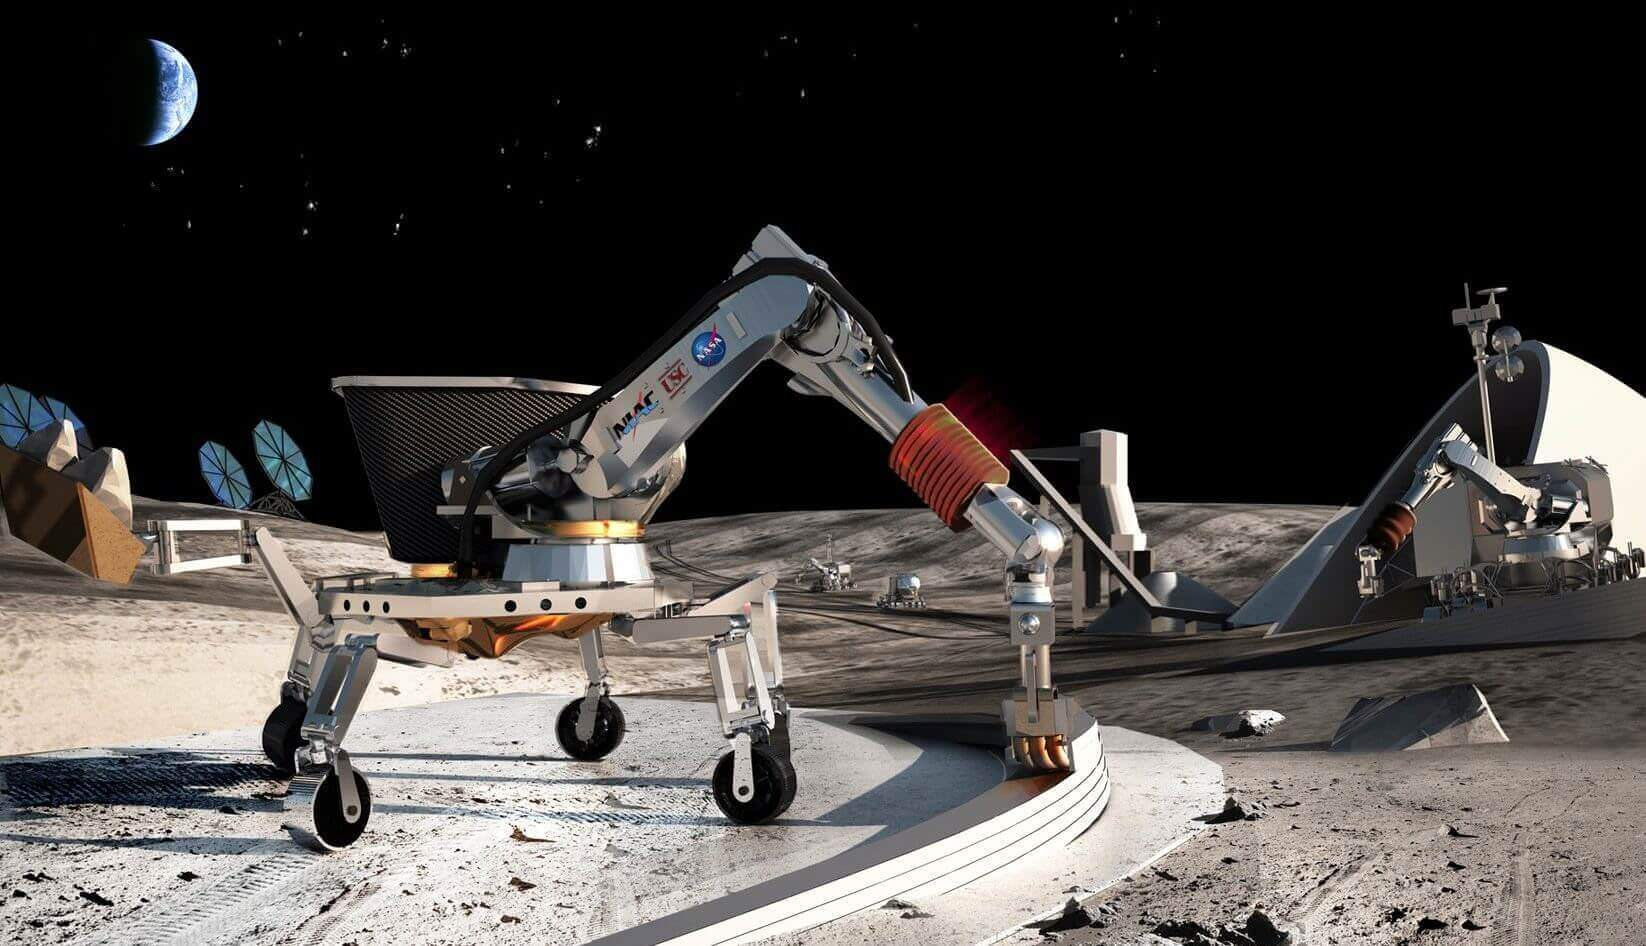 Professor wants NASA to 3D Print Houses on the Moon | All3DP